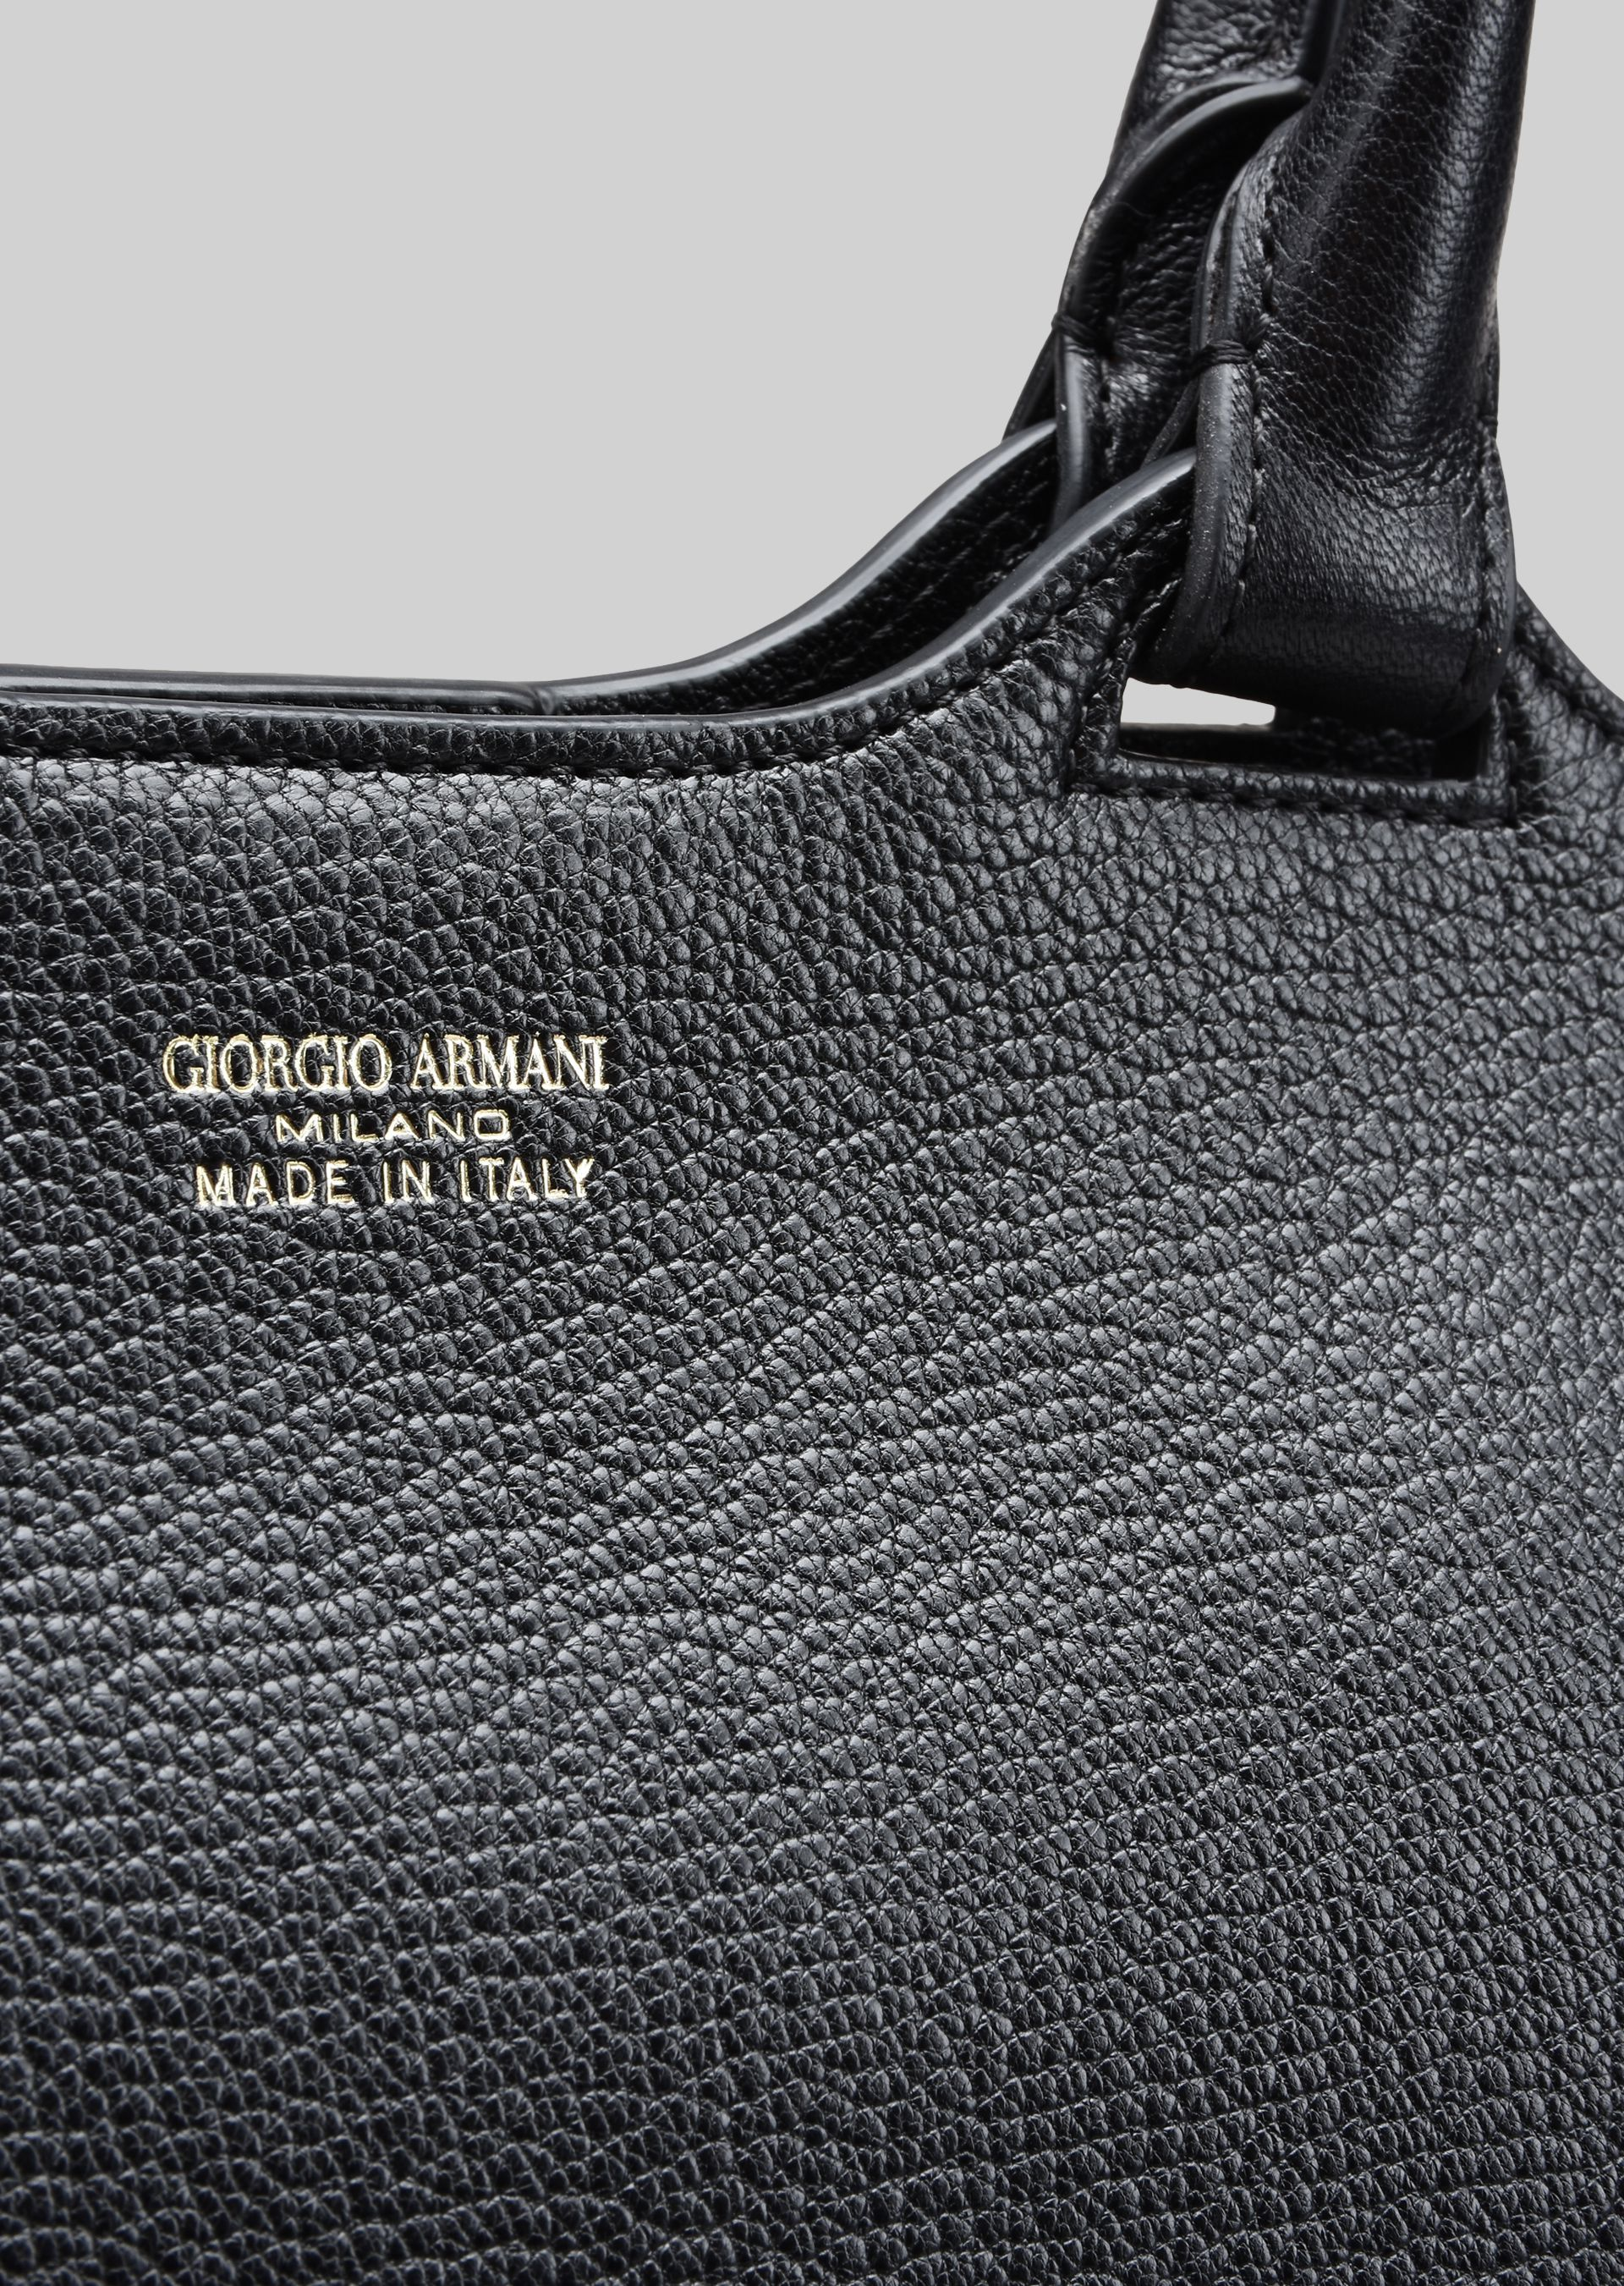 GIORGIO ARMANI TOP HANDLE BAG IN LEATHER Top Handle D b